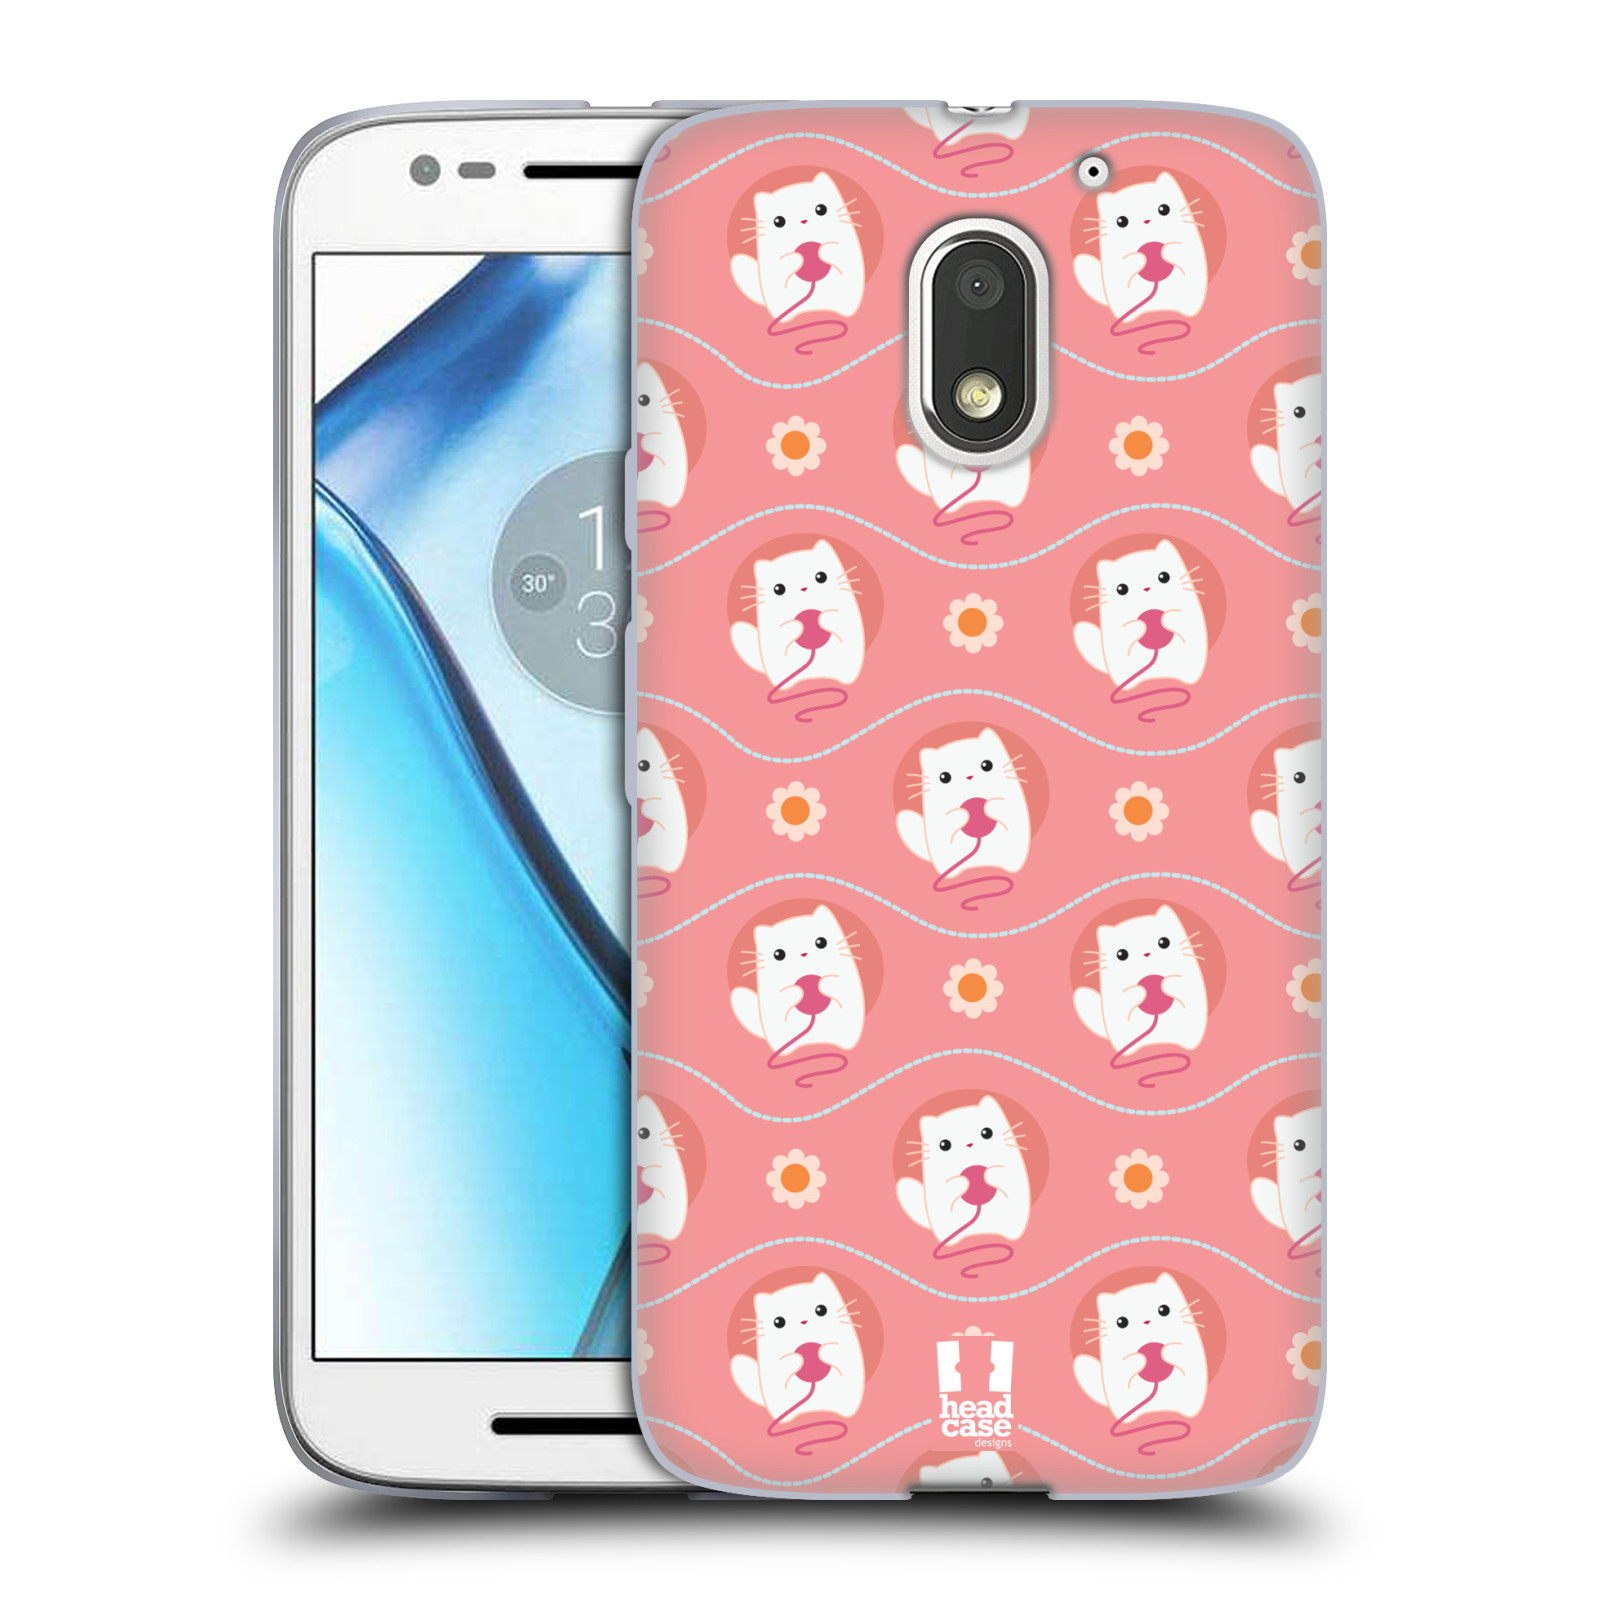 HEAD-CASE-DESIGNS-CUTIE-ANIMAL-PATTERNS-SOFT-GEL-CASE-FOR-MOTOROLA-MOTO-E3